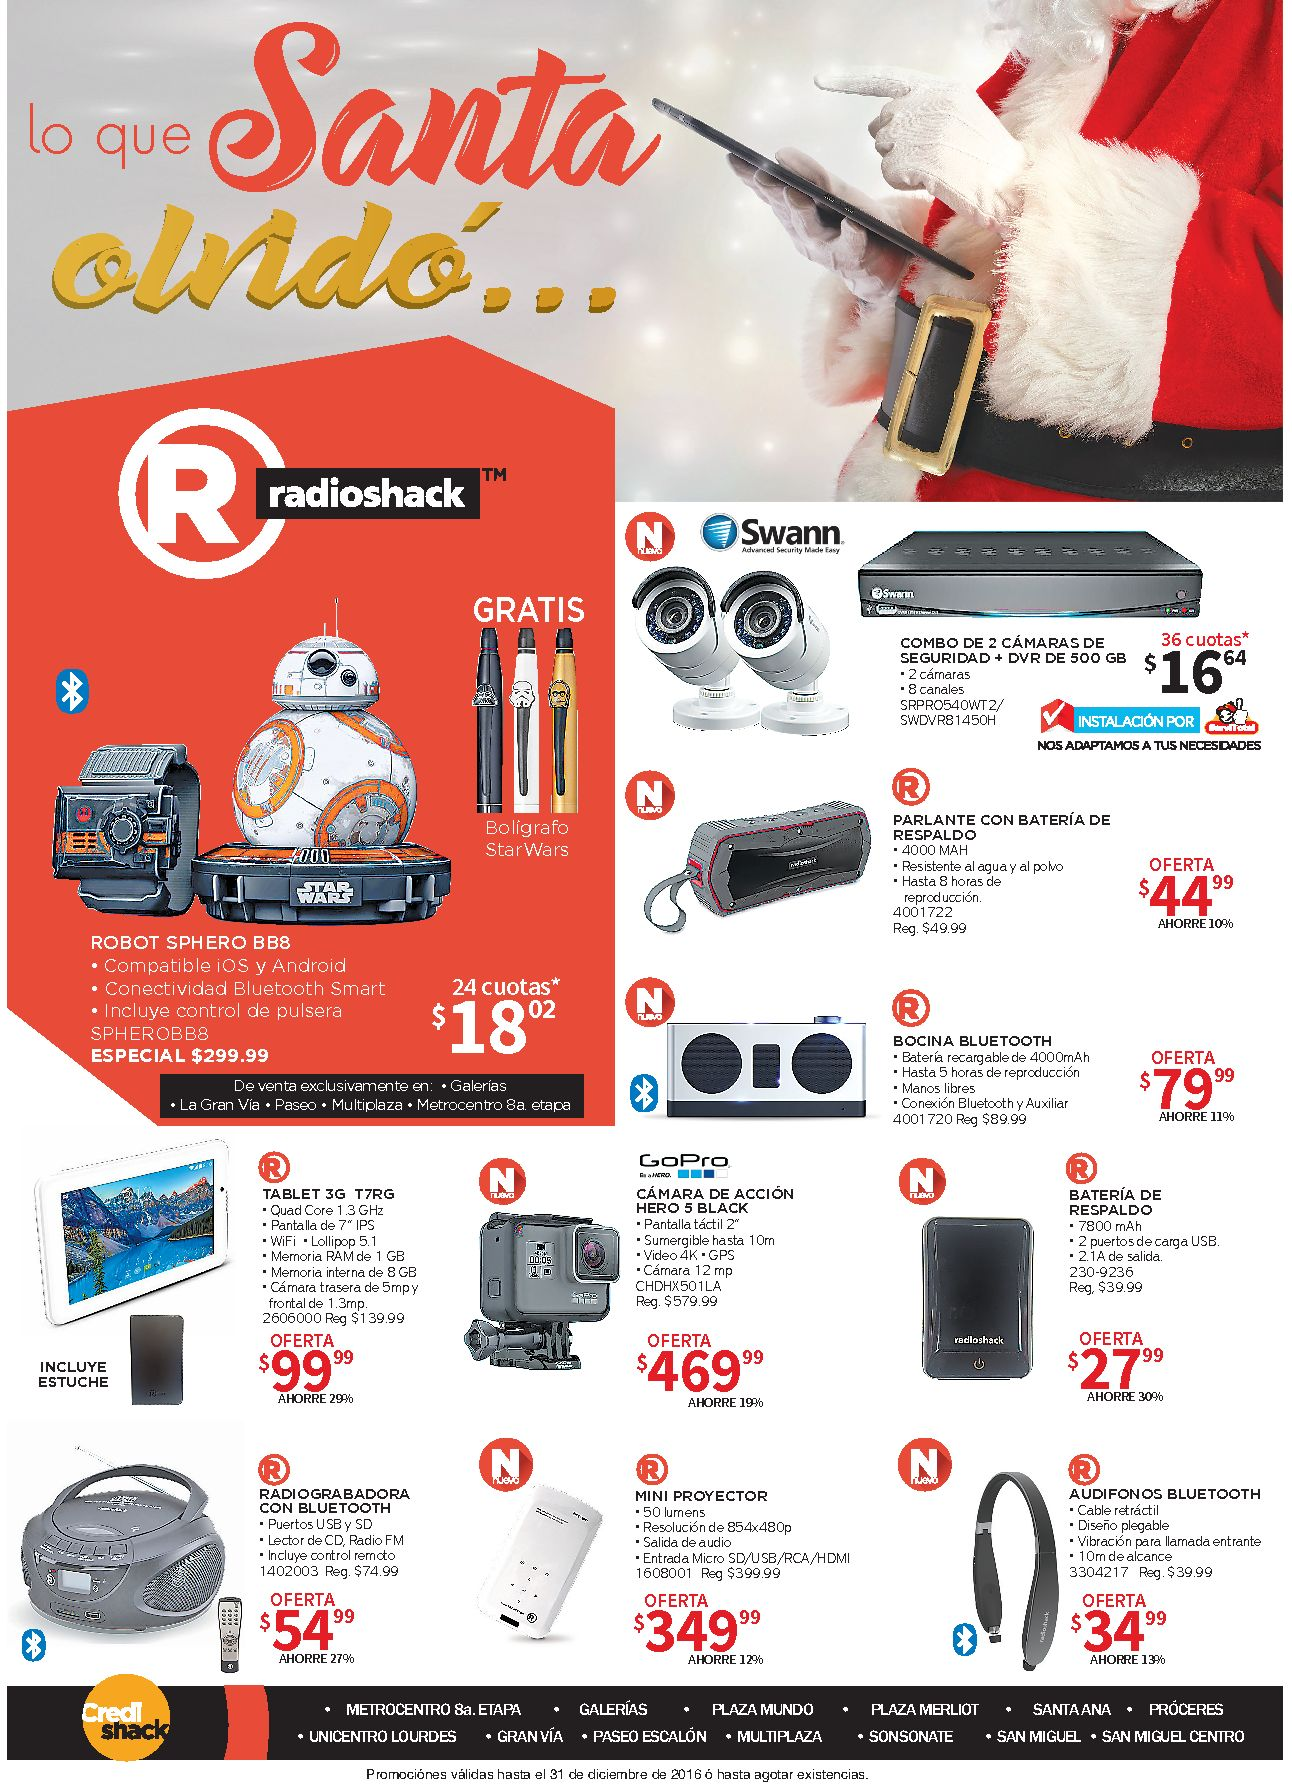 radio-shack-star-wars-toys-security-cameras-and-more-gadgets